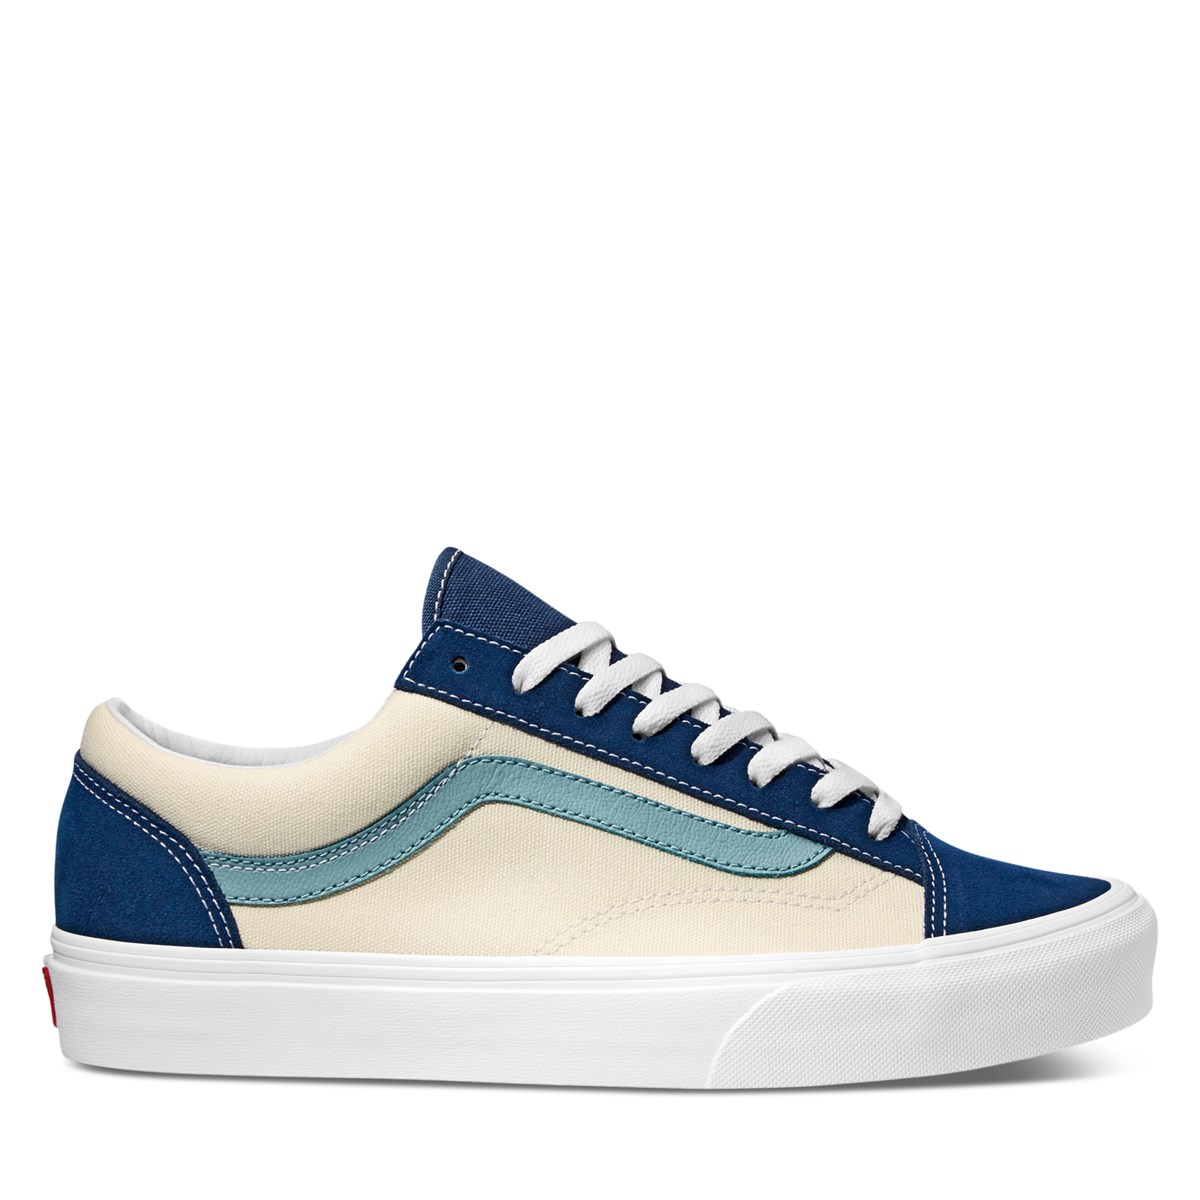 Men's Style 36 Retro Sport Sneakers in Blue